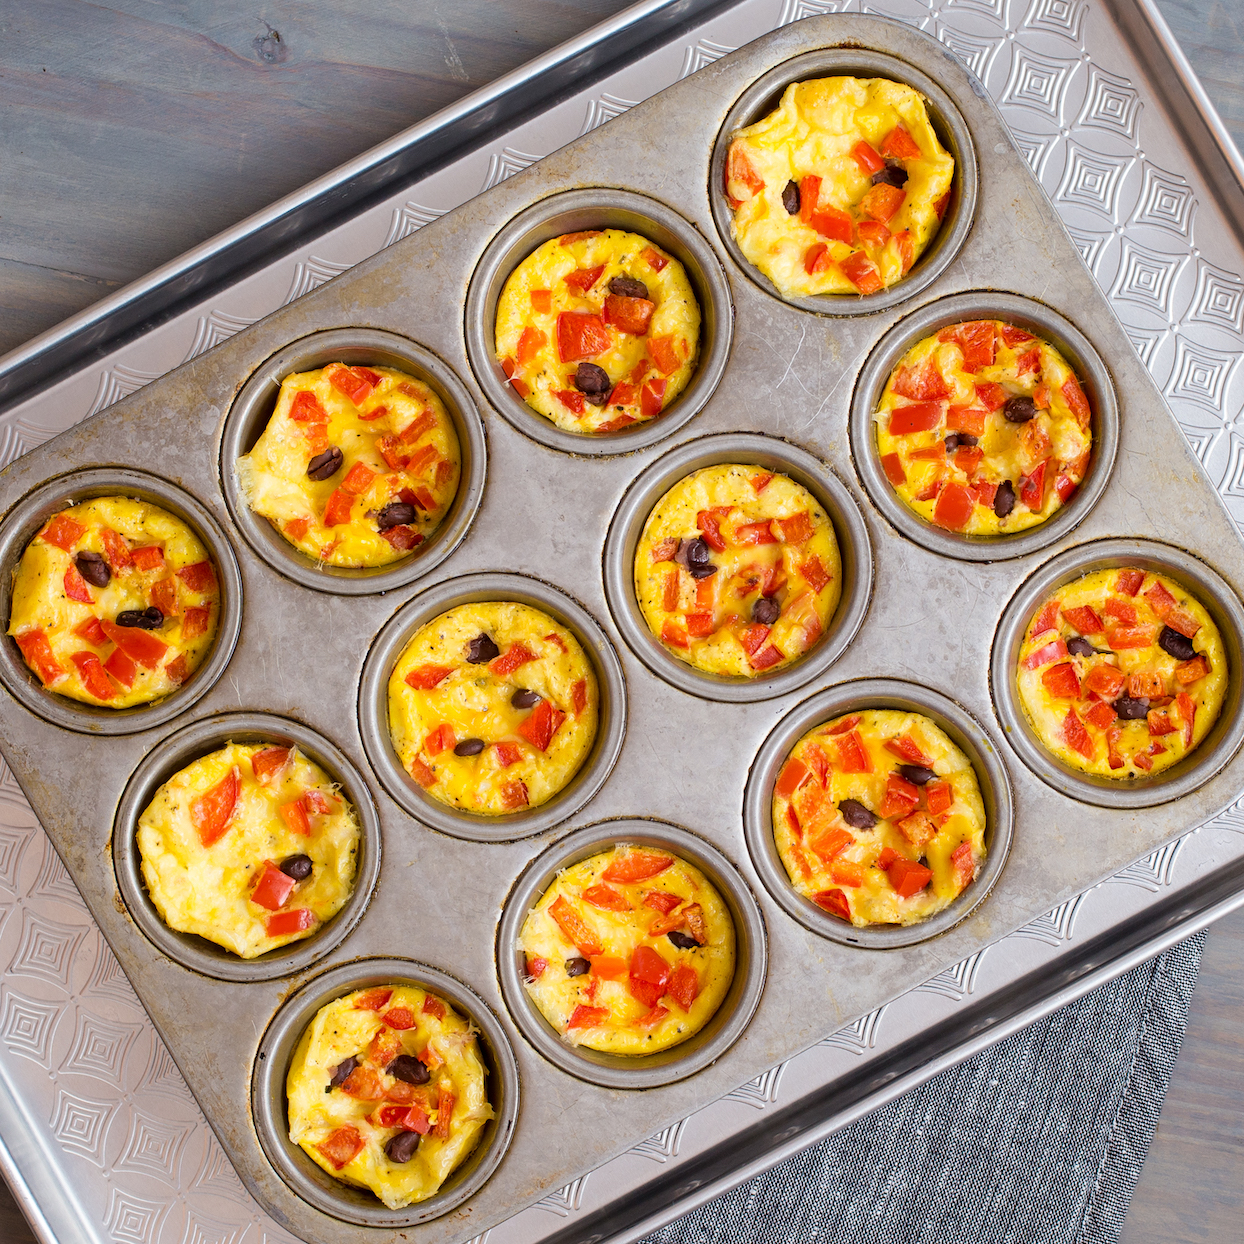 Let your muffin tin help you meal-prep a week's worth of protein-rich vegetarian muffin-tin eggs with a Southwestern spin to stash in the fridge or freezer for those extra-busy mornings. Source: EatingWell.com, March 2020